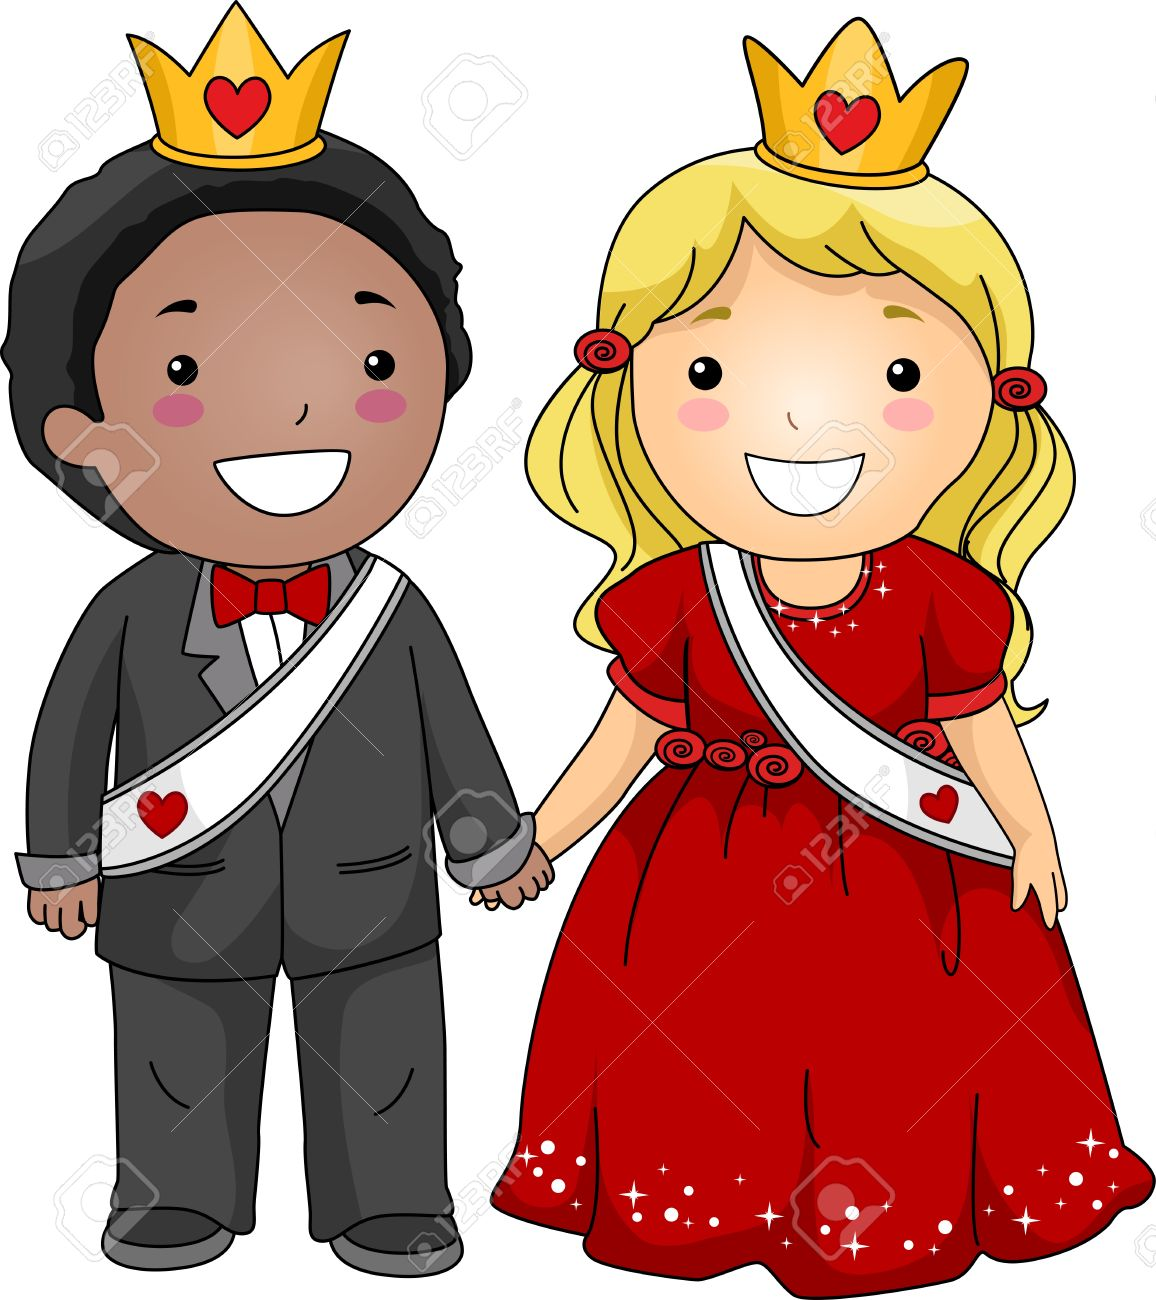 king and queen clipart clipart panda free clipart images rh clipartpanda com king and queen clipart king and queen clipart black and white